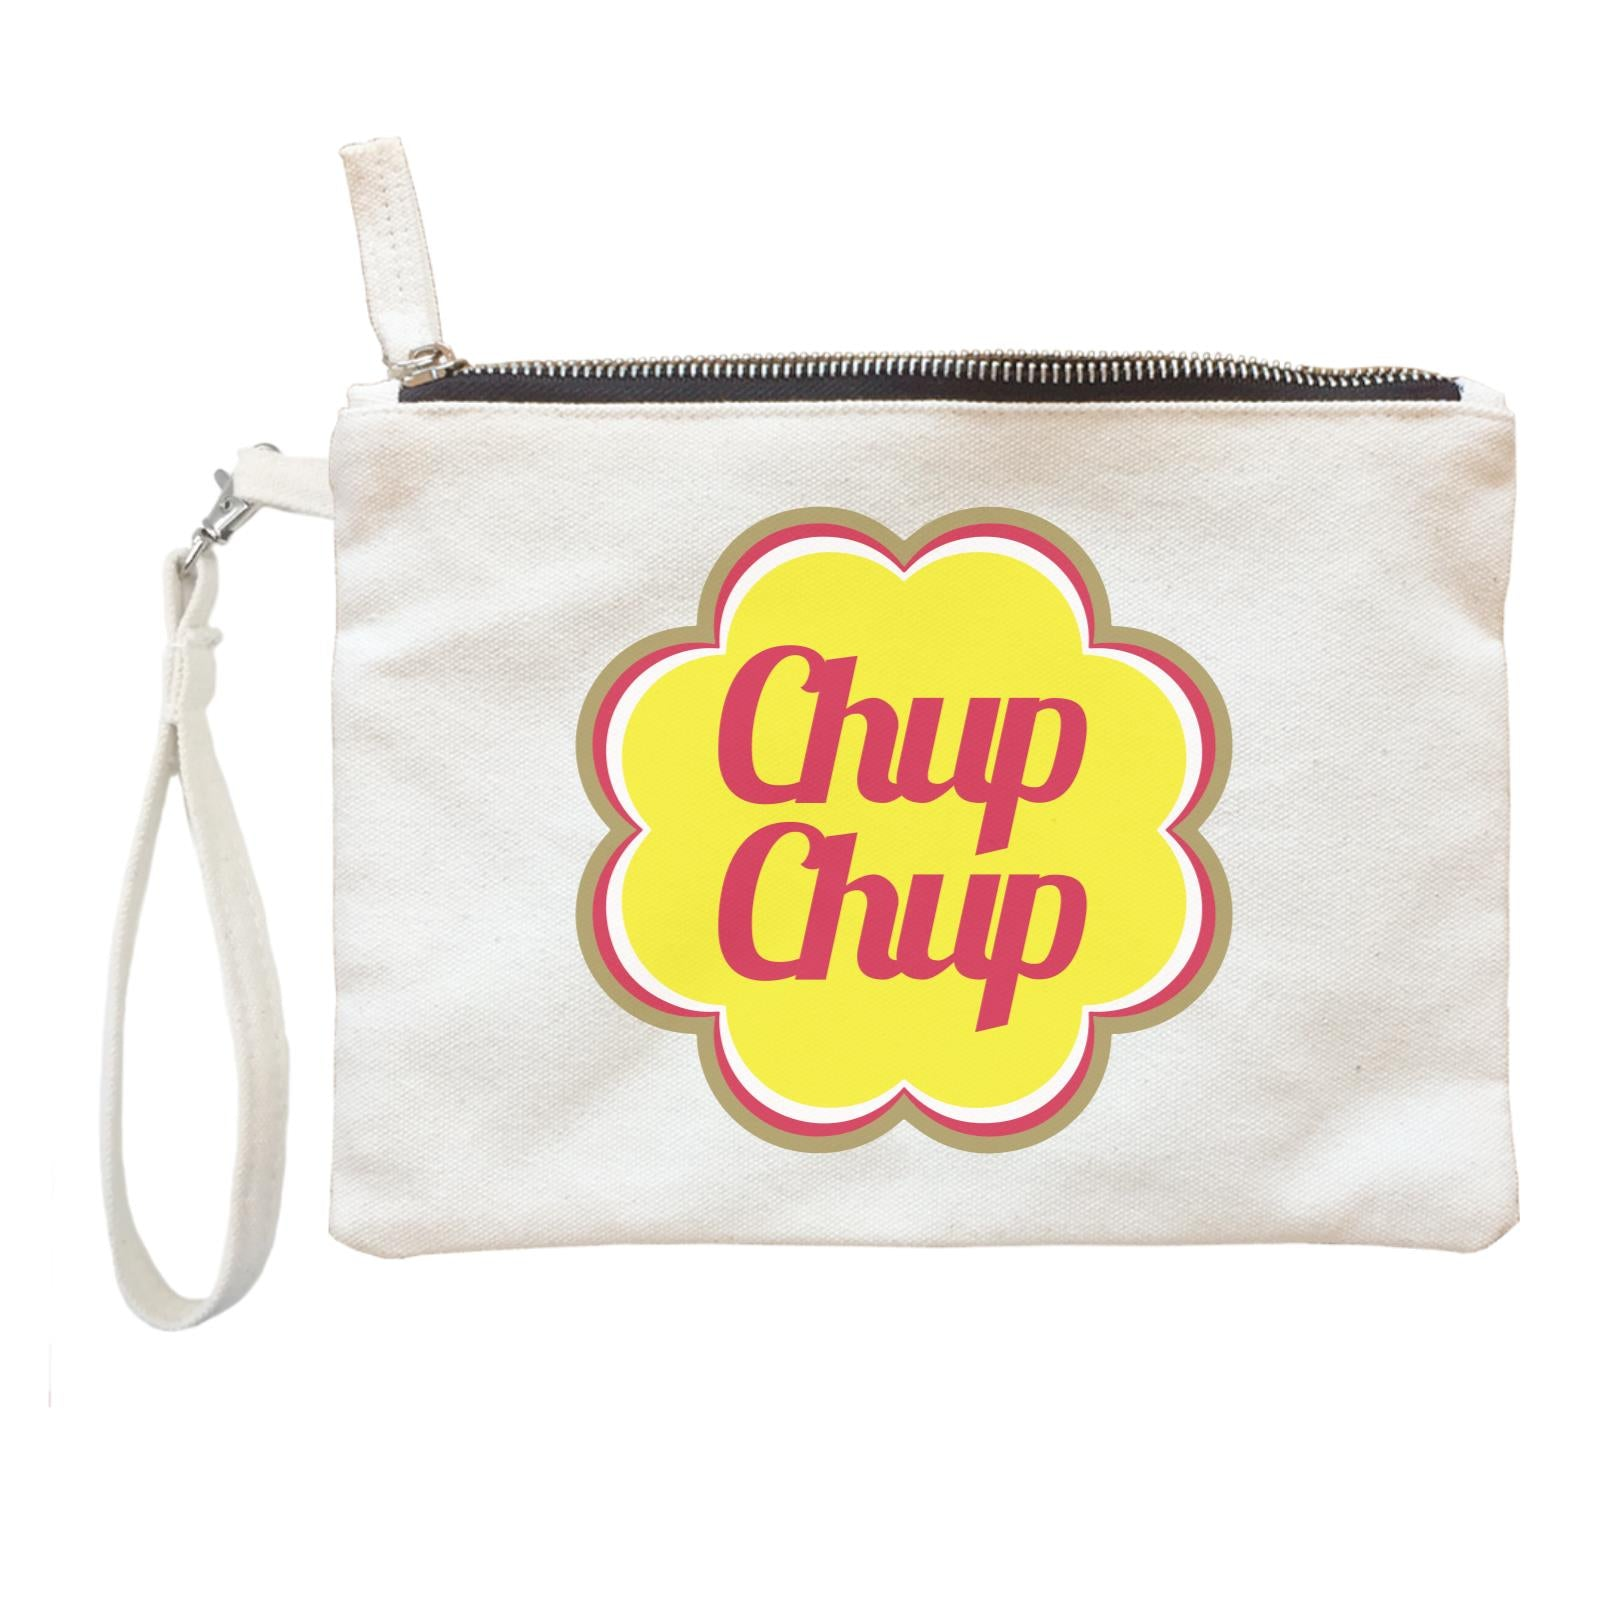 Slang Statement Chup Chup Accessories Zipper Pouch with Handle